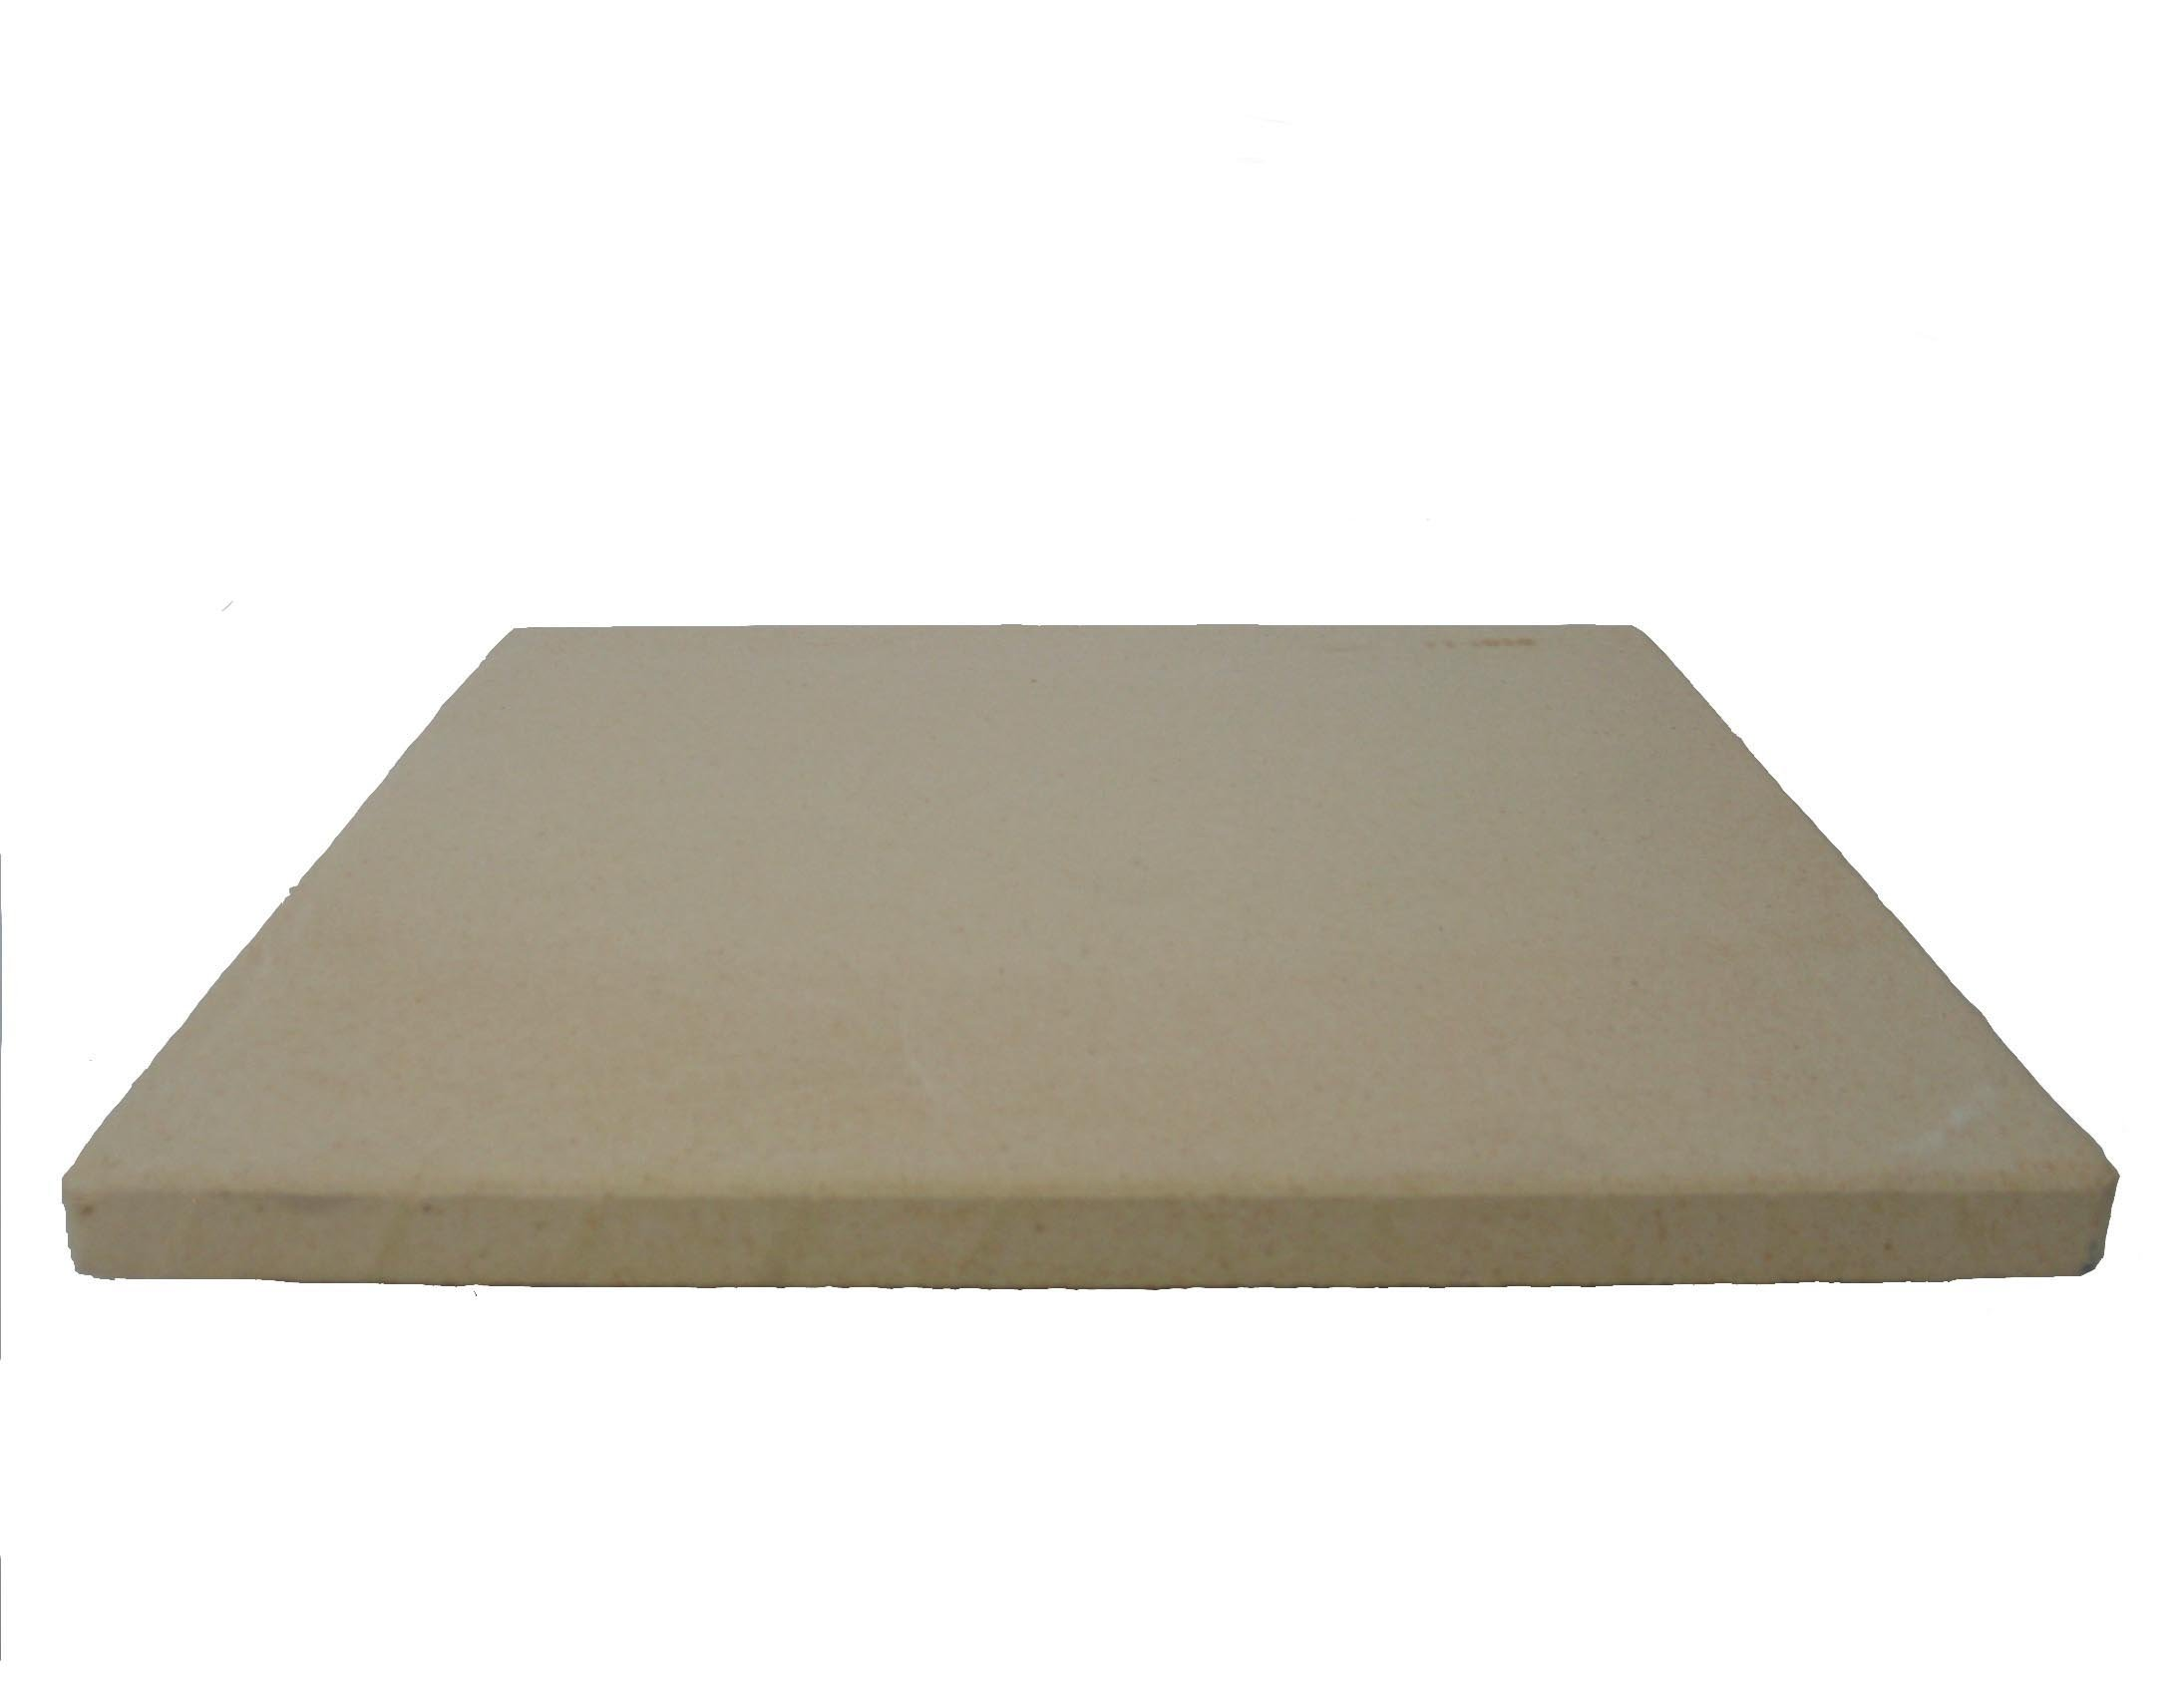 20 X 20 X 1 Square Industrial Pizza Stone by California Pizza Stones